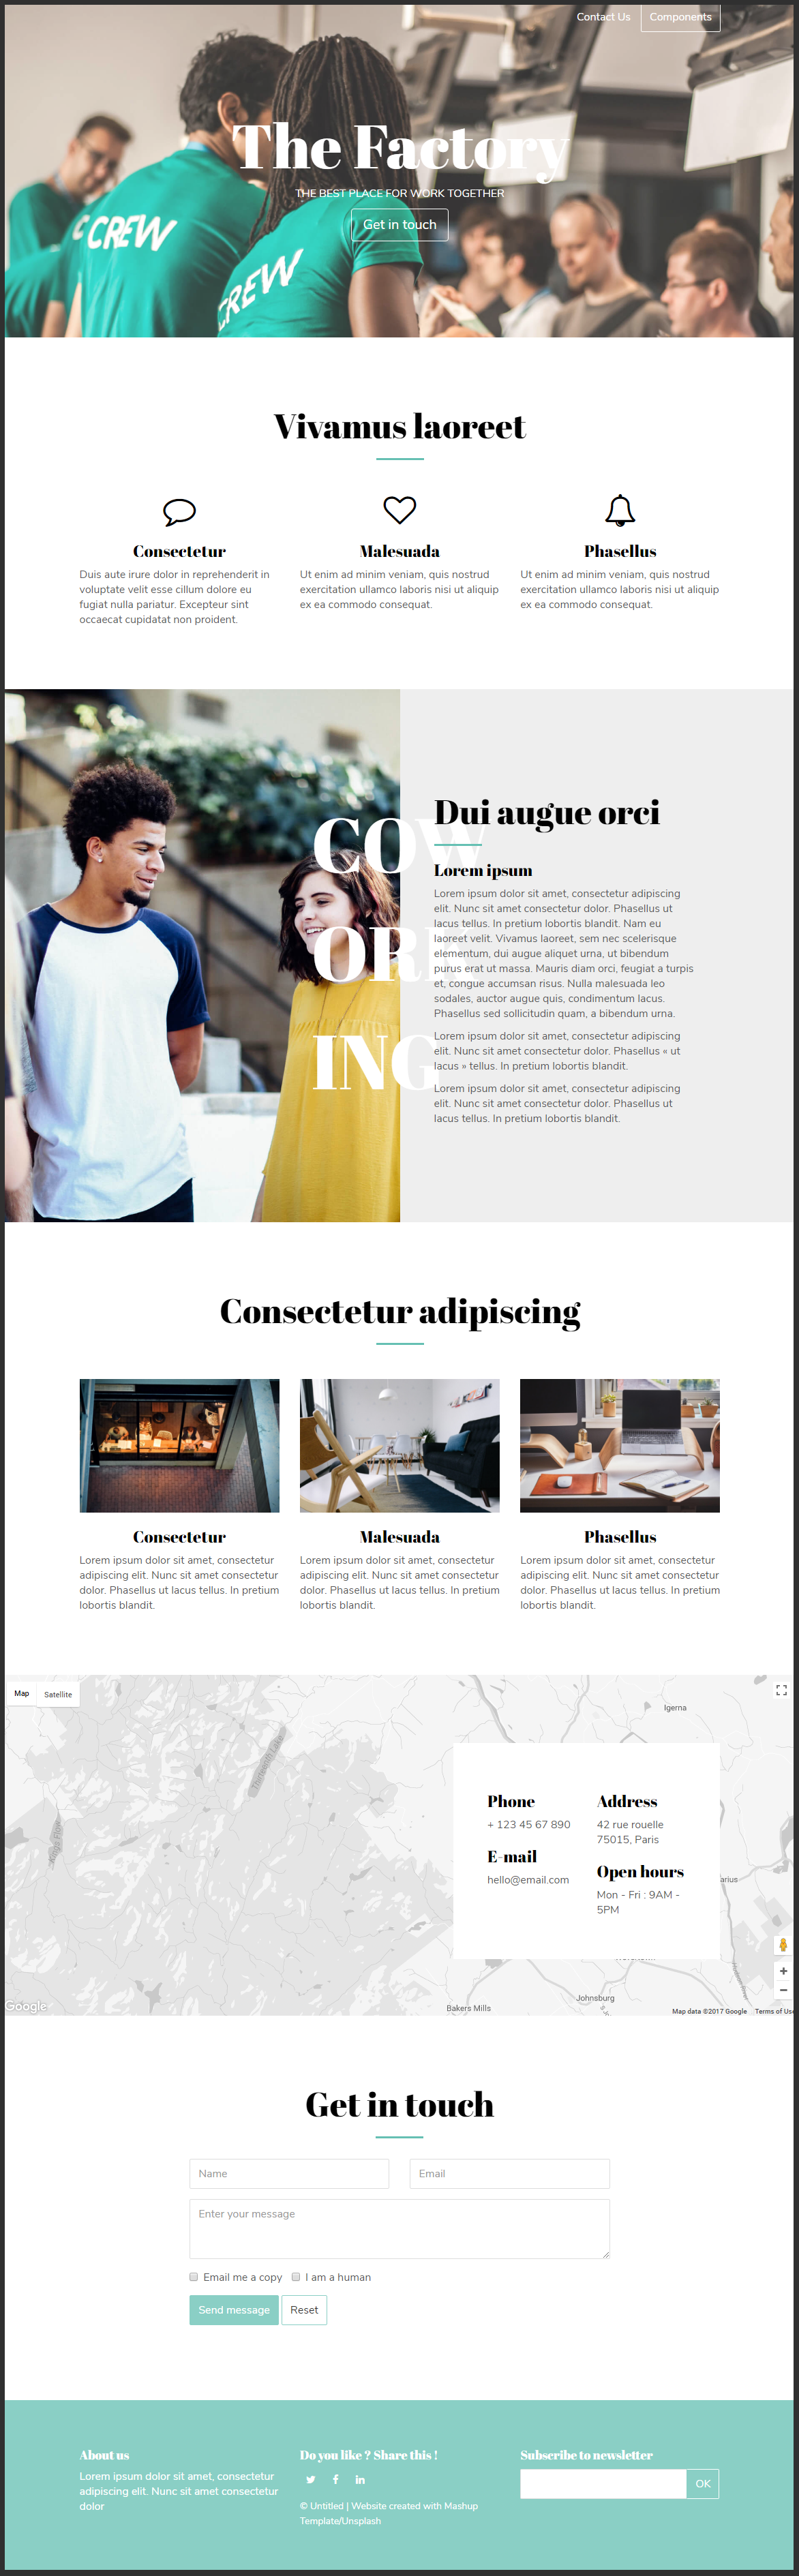 css html startup website template npm html sketch bypeoplebypeople howldb. Black Bedroom Furniture Sets. Home Design Ideas